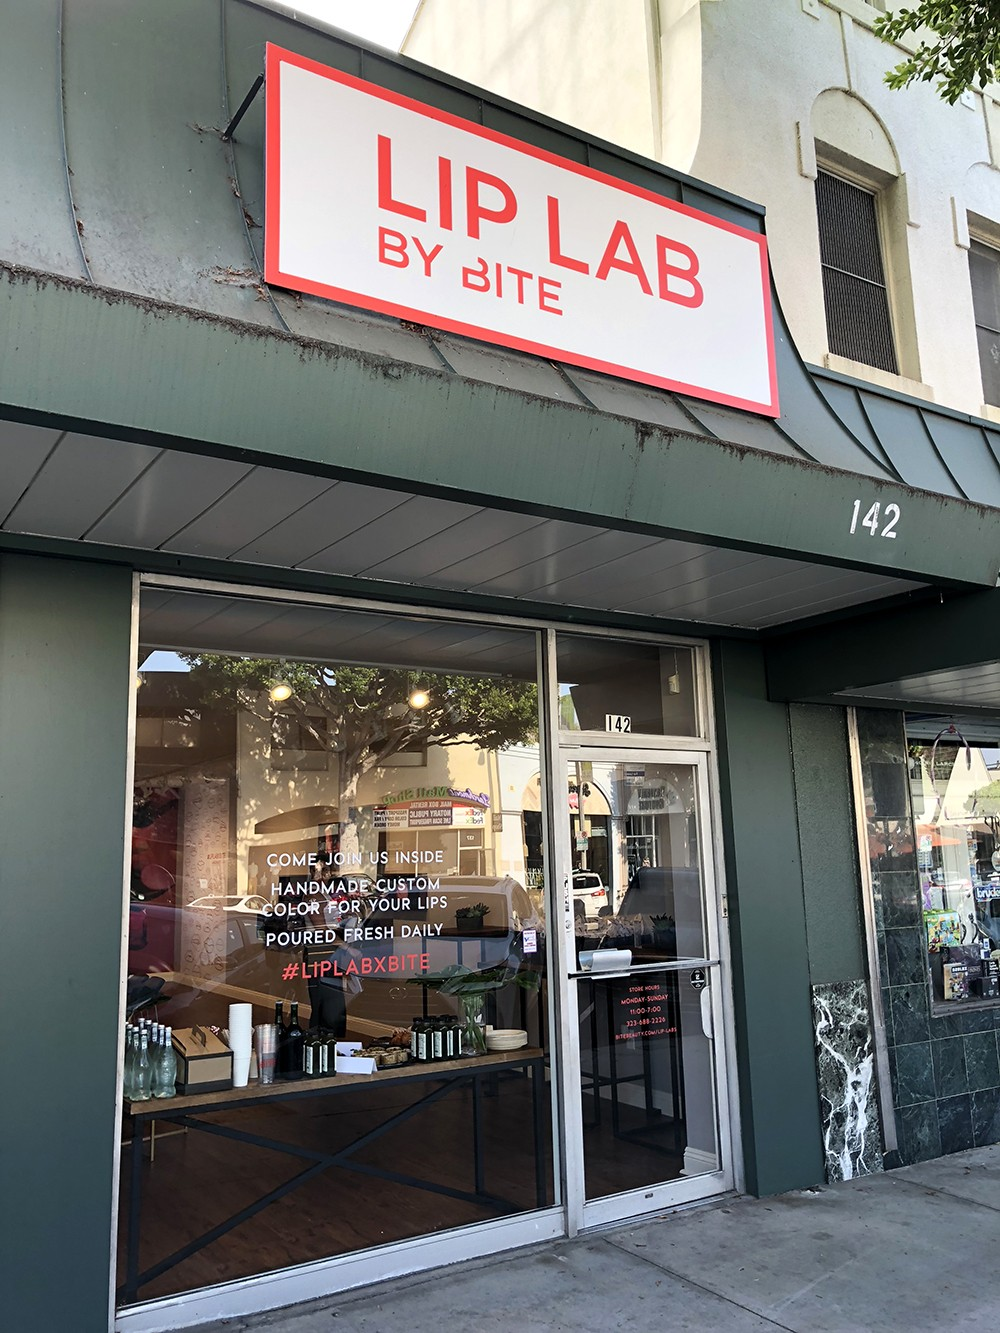 Create Your Own Cruelty Free Lipstick at Lip Lab By BITE | Sharing a Review and Experience featured by popular Los Angeles cruelty free beauty blogger My Beauty Bunny